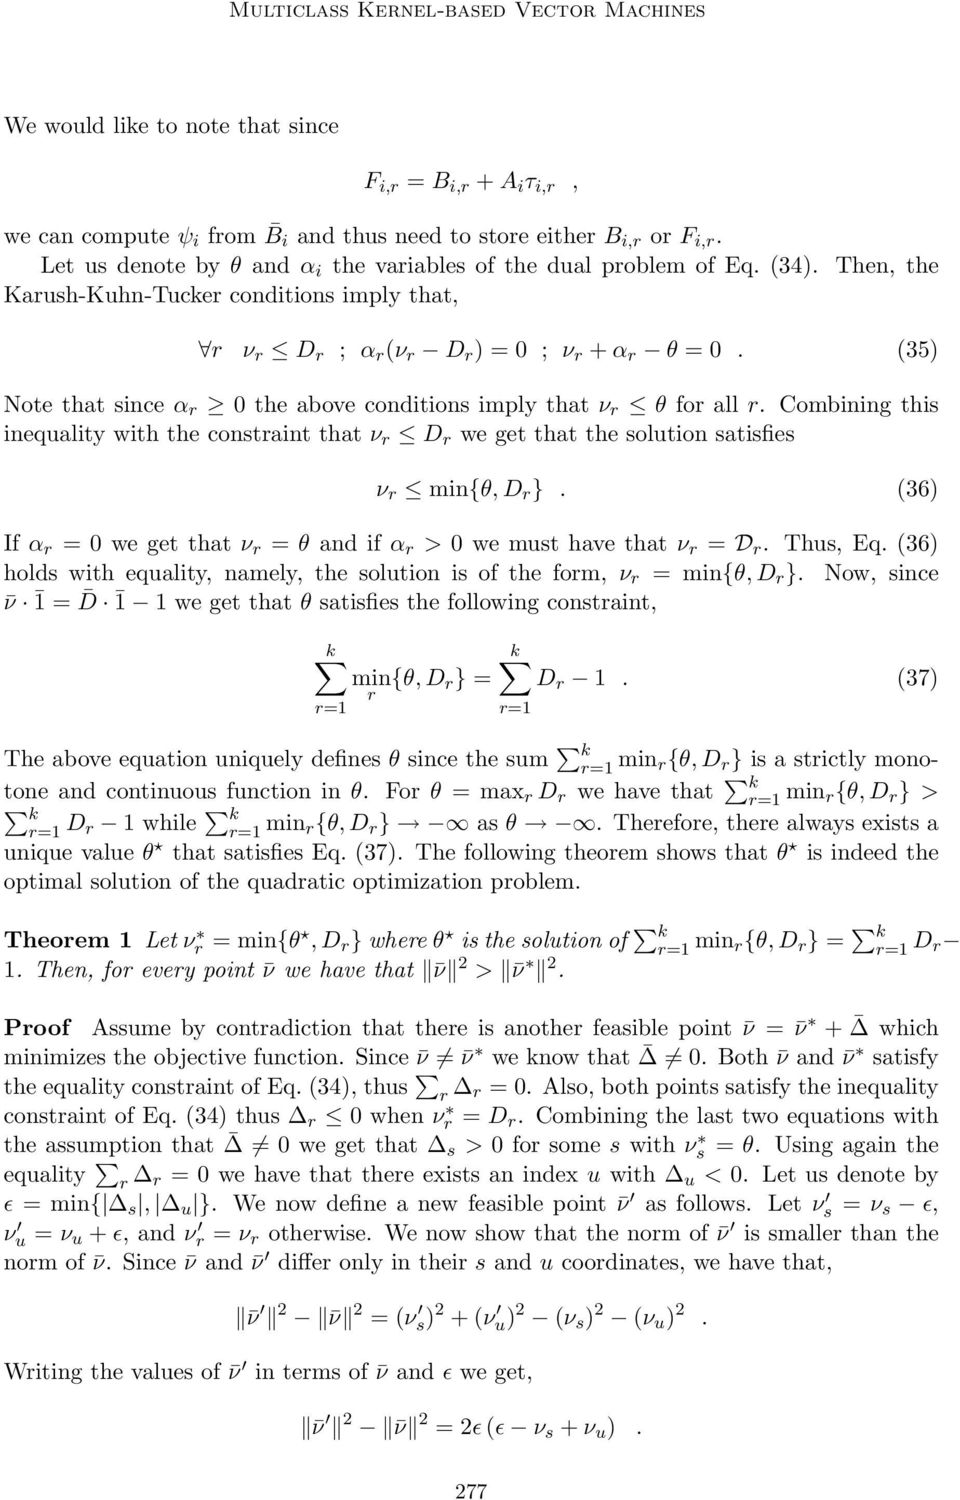 (35) Note that since α 0 the above conditions imply that ν θ fo all. Combining this inequality with the constaint that ν D we get that the solution satisfies ν min{θ, D }.